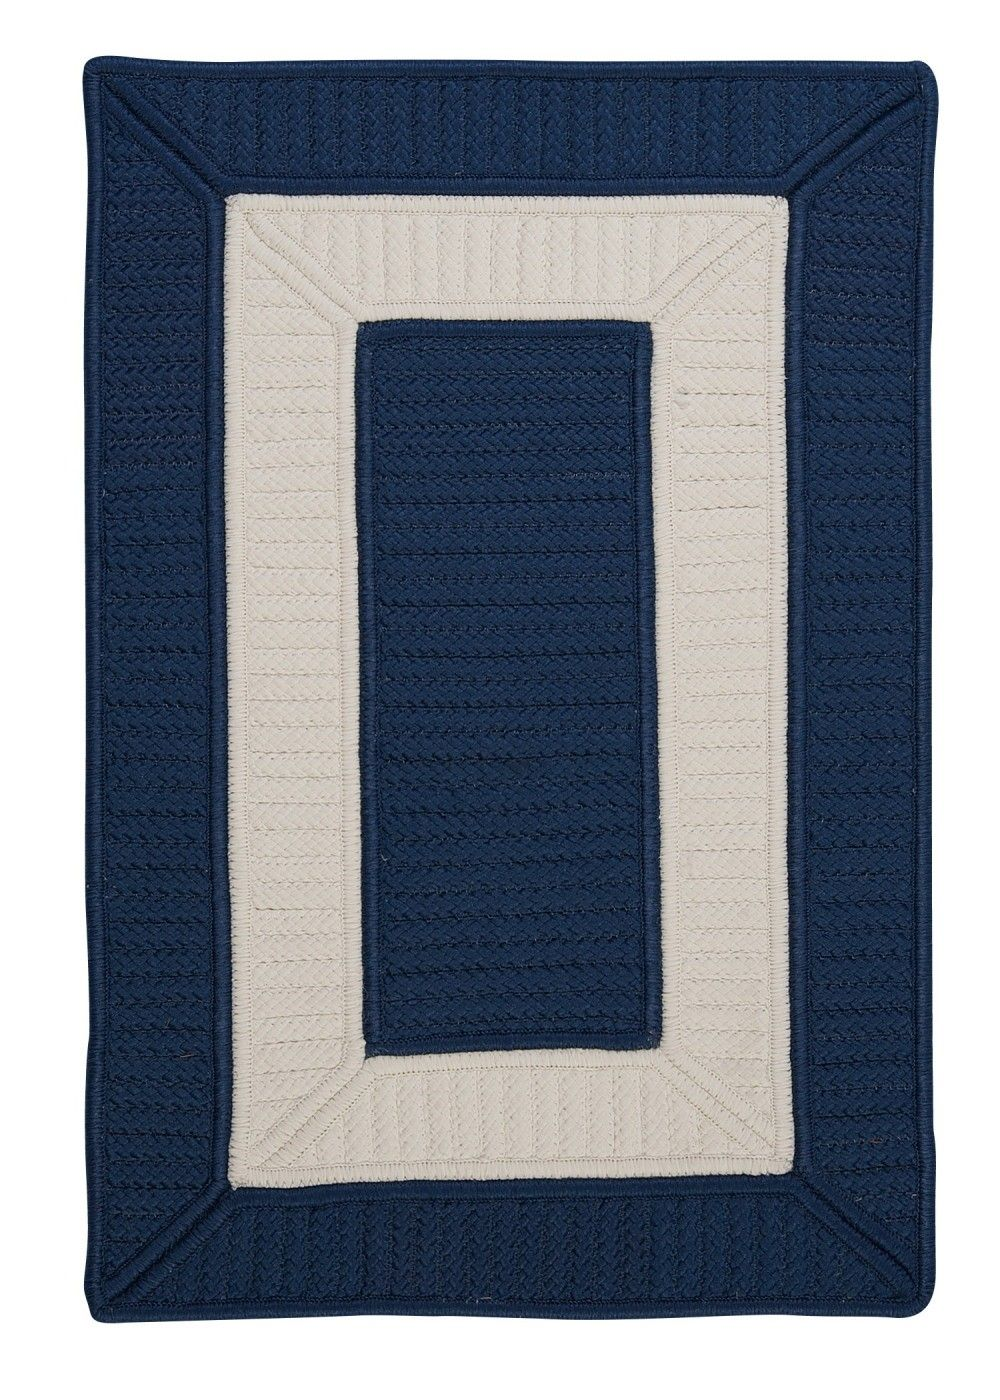 Navy Blue Bathroom Rugs: Rope Walk Area Rug - Navy Blue And White